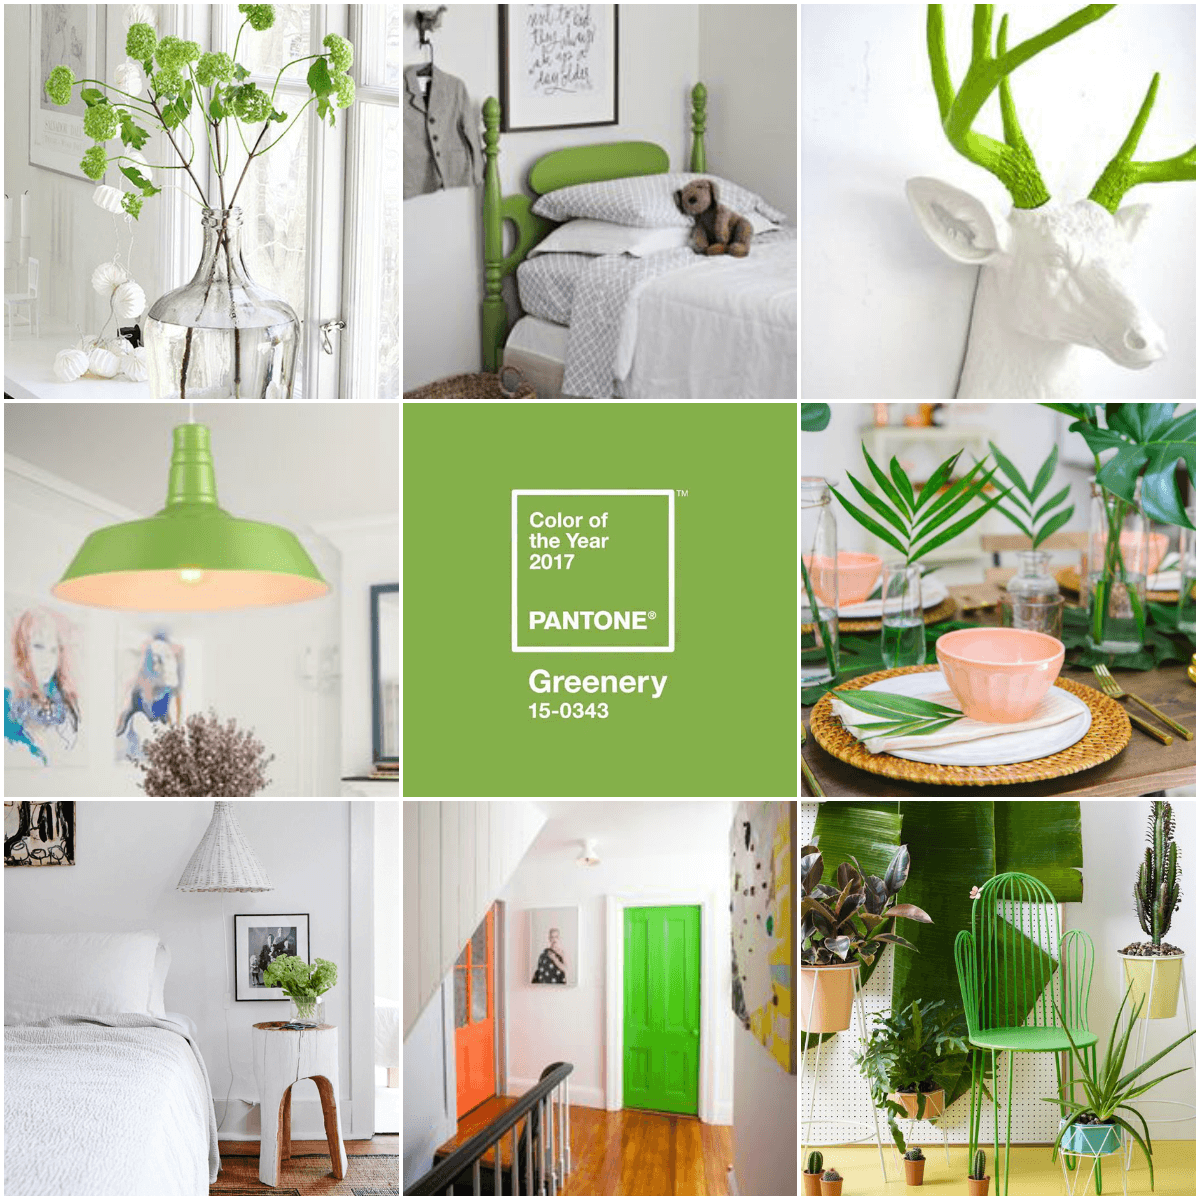 PANTONE Reveals The Colour Of Year For 2017 GREENERY